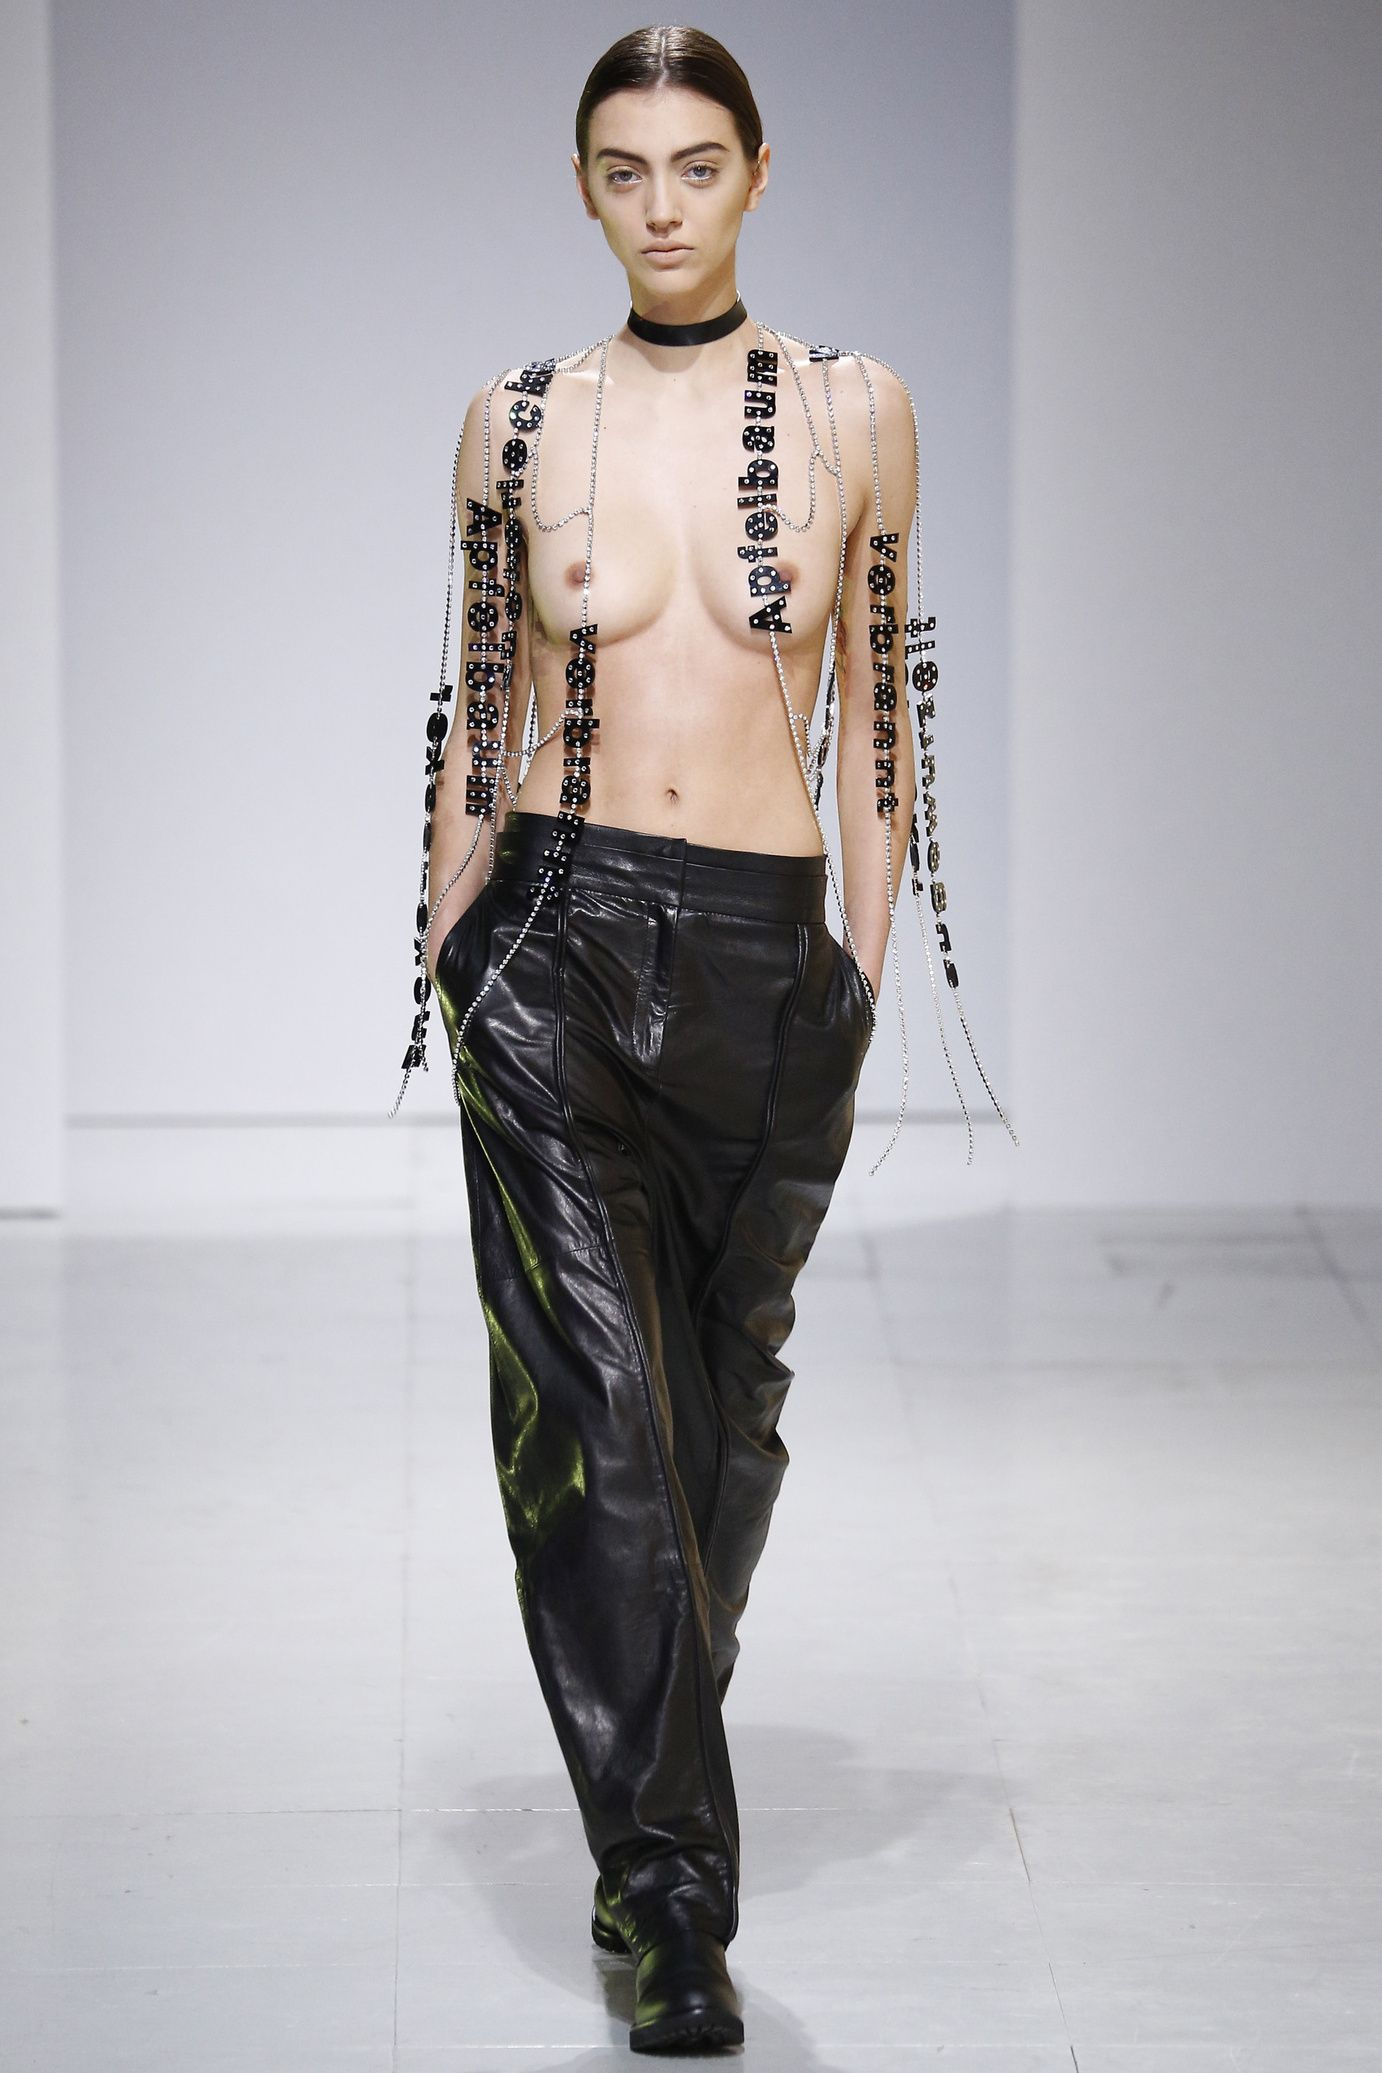 To acquire Chalayans hussein models took shower runway picture trends